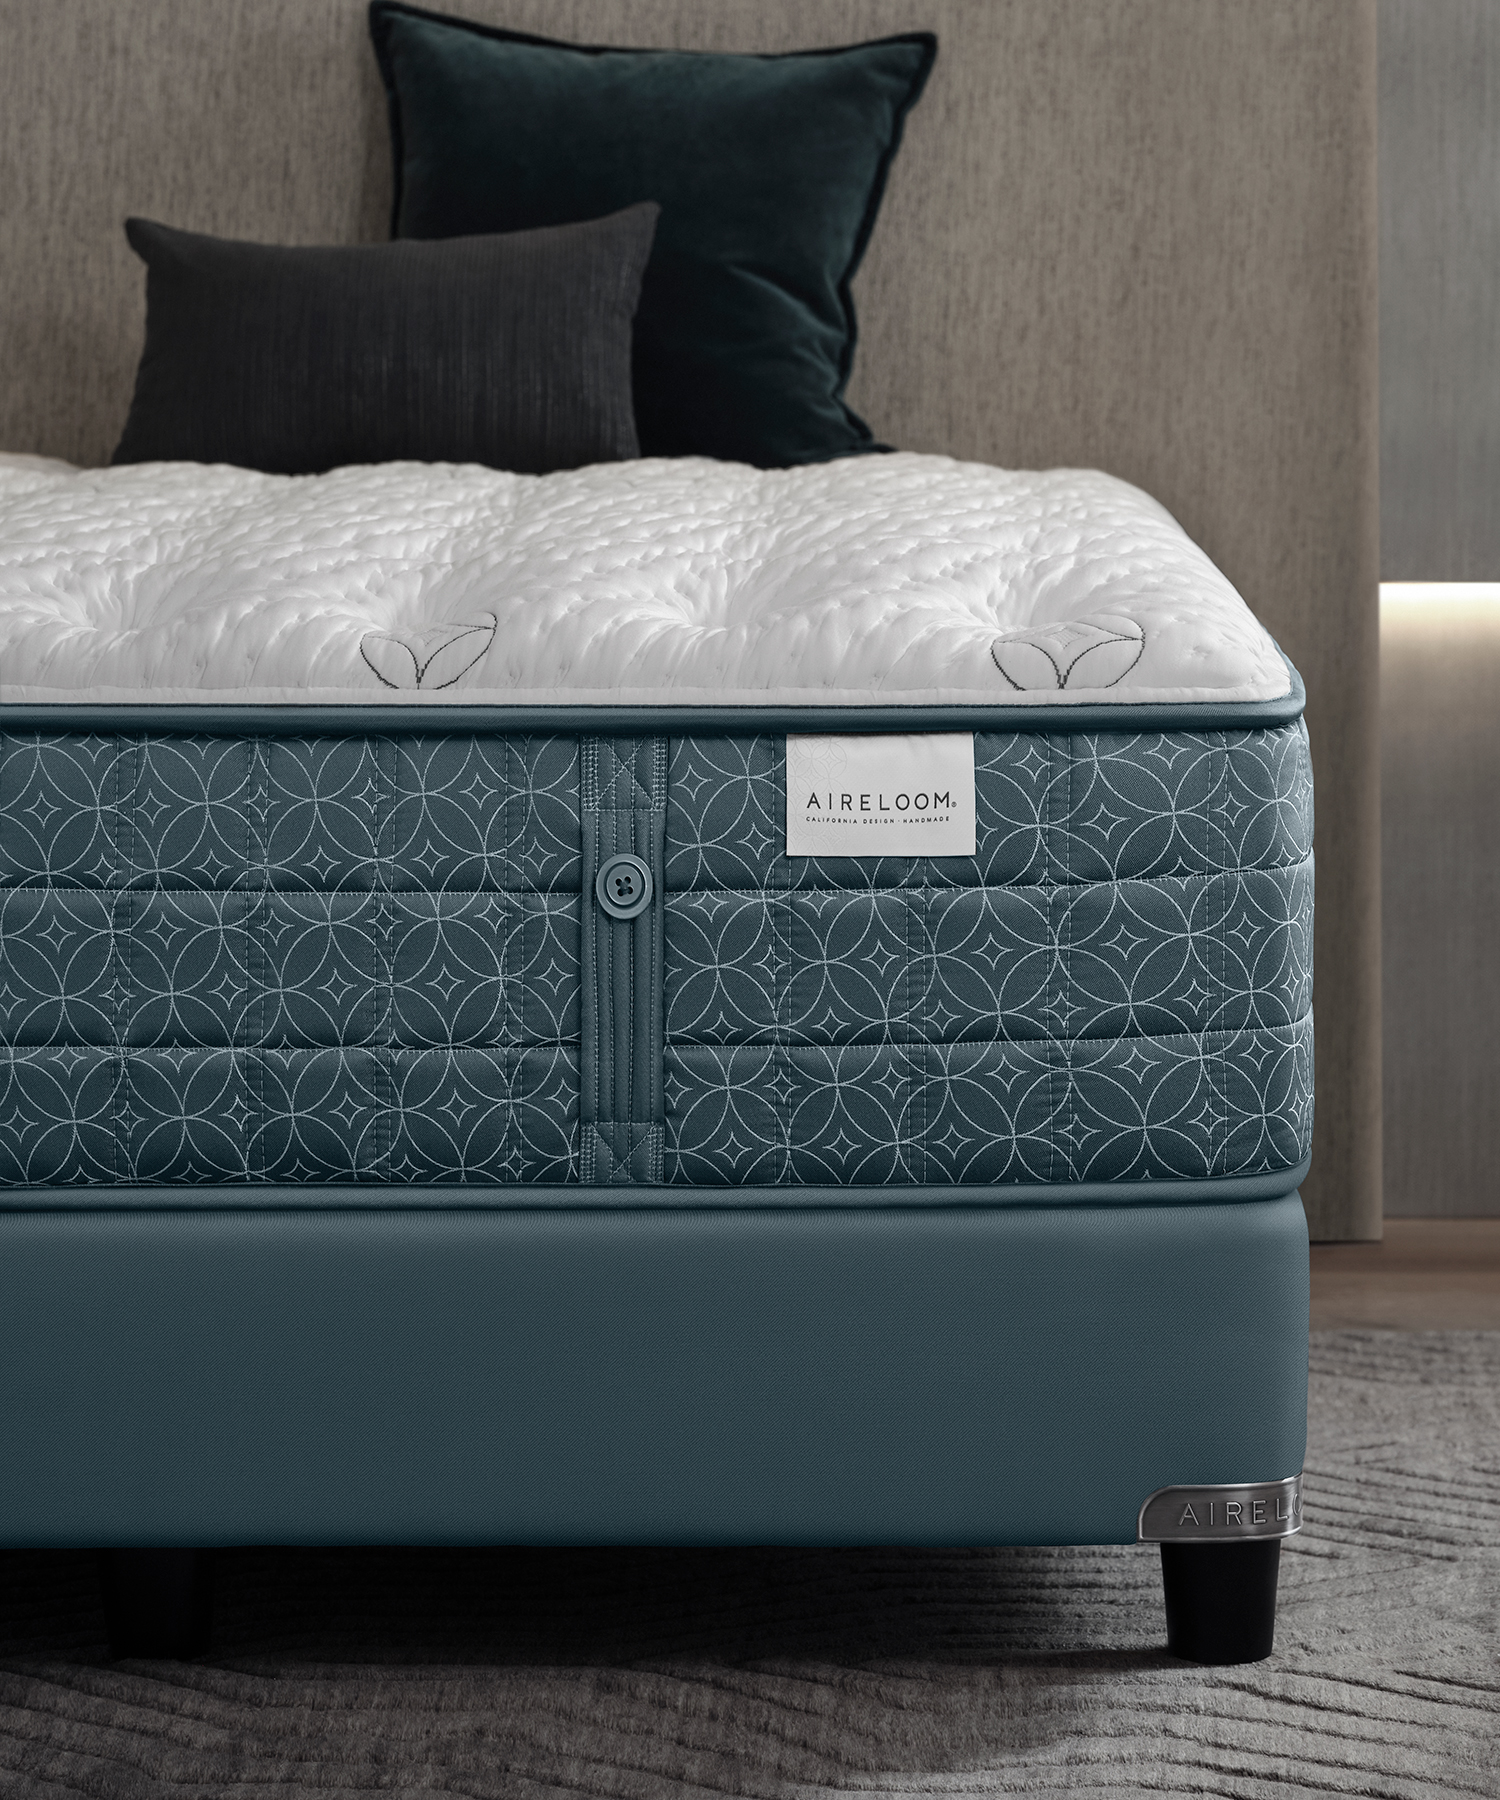 Aireloom Streamline Firm Mattress